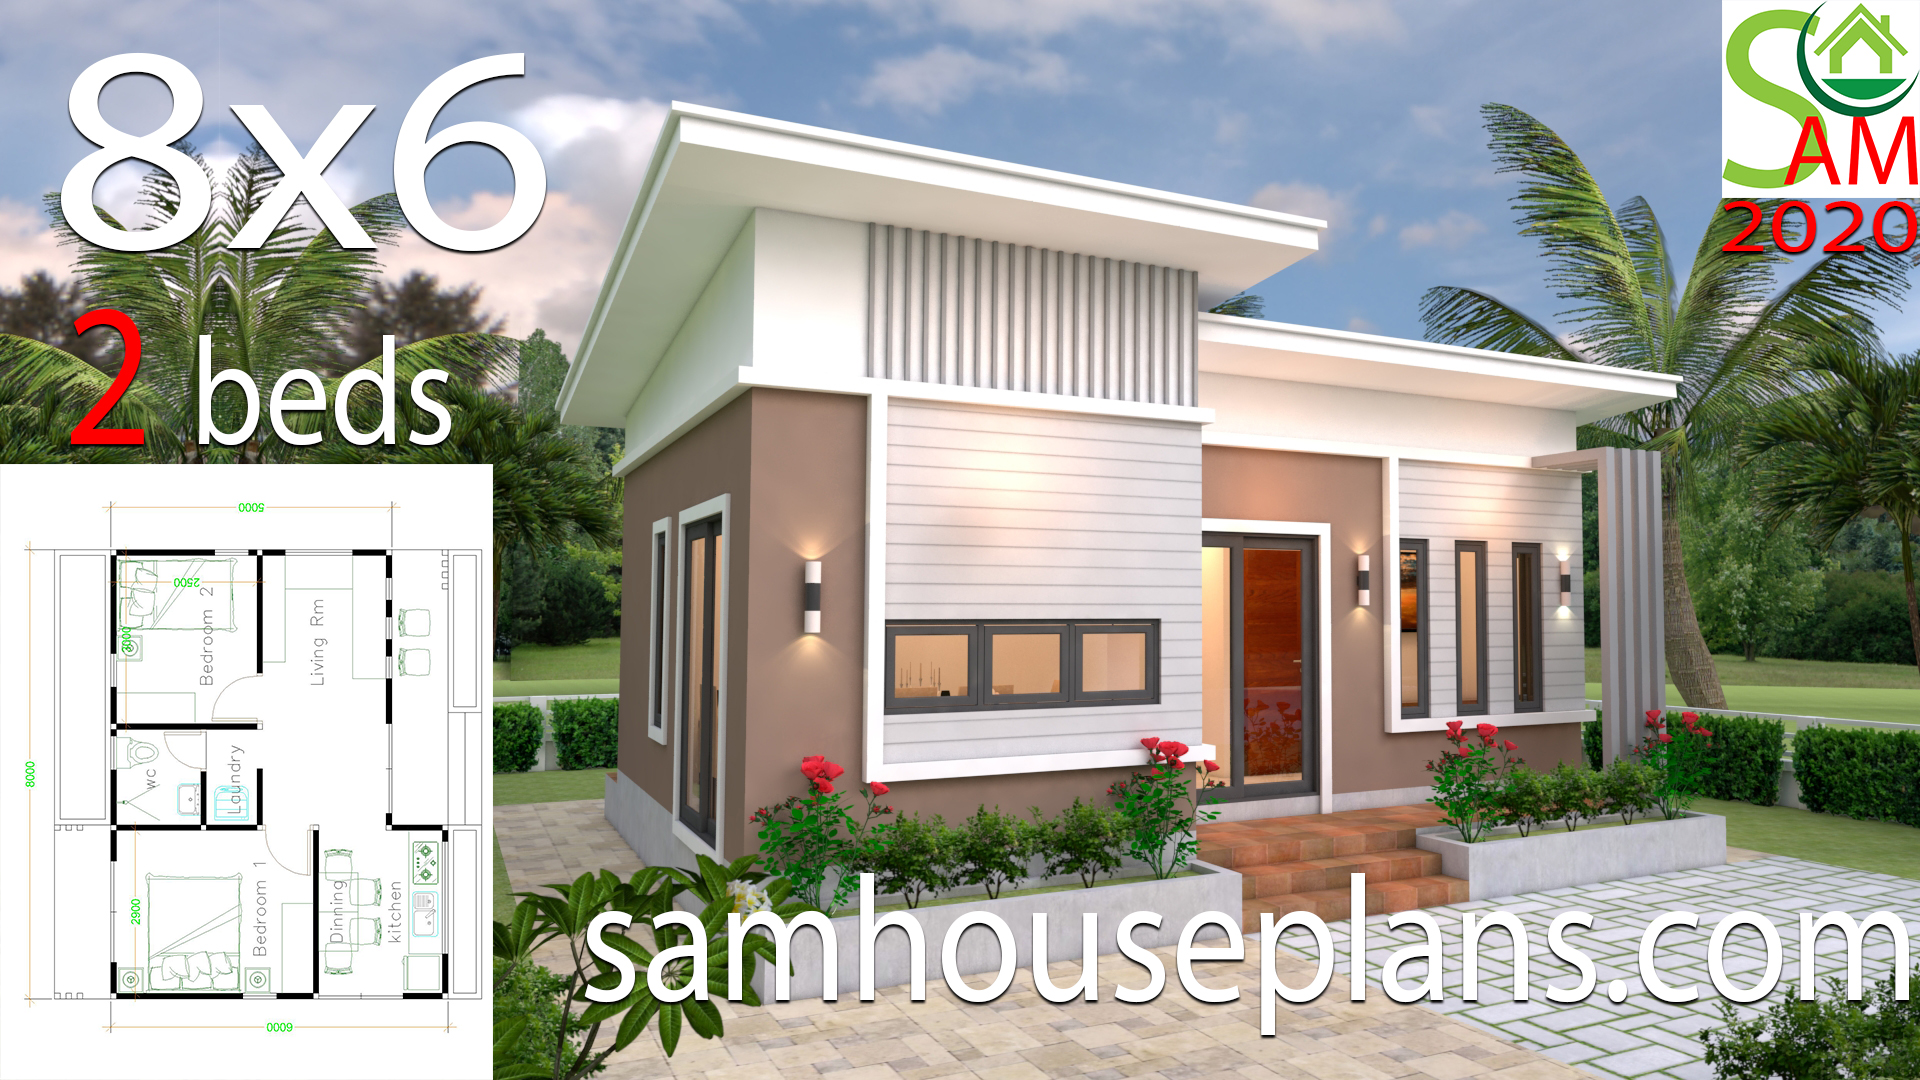 Small House Plans 8x6 With 2 Bedrooms Slope Roof Samhouseplans